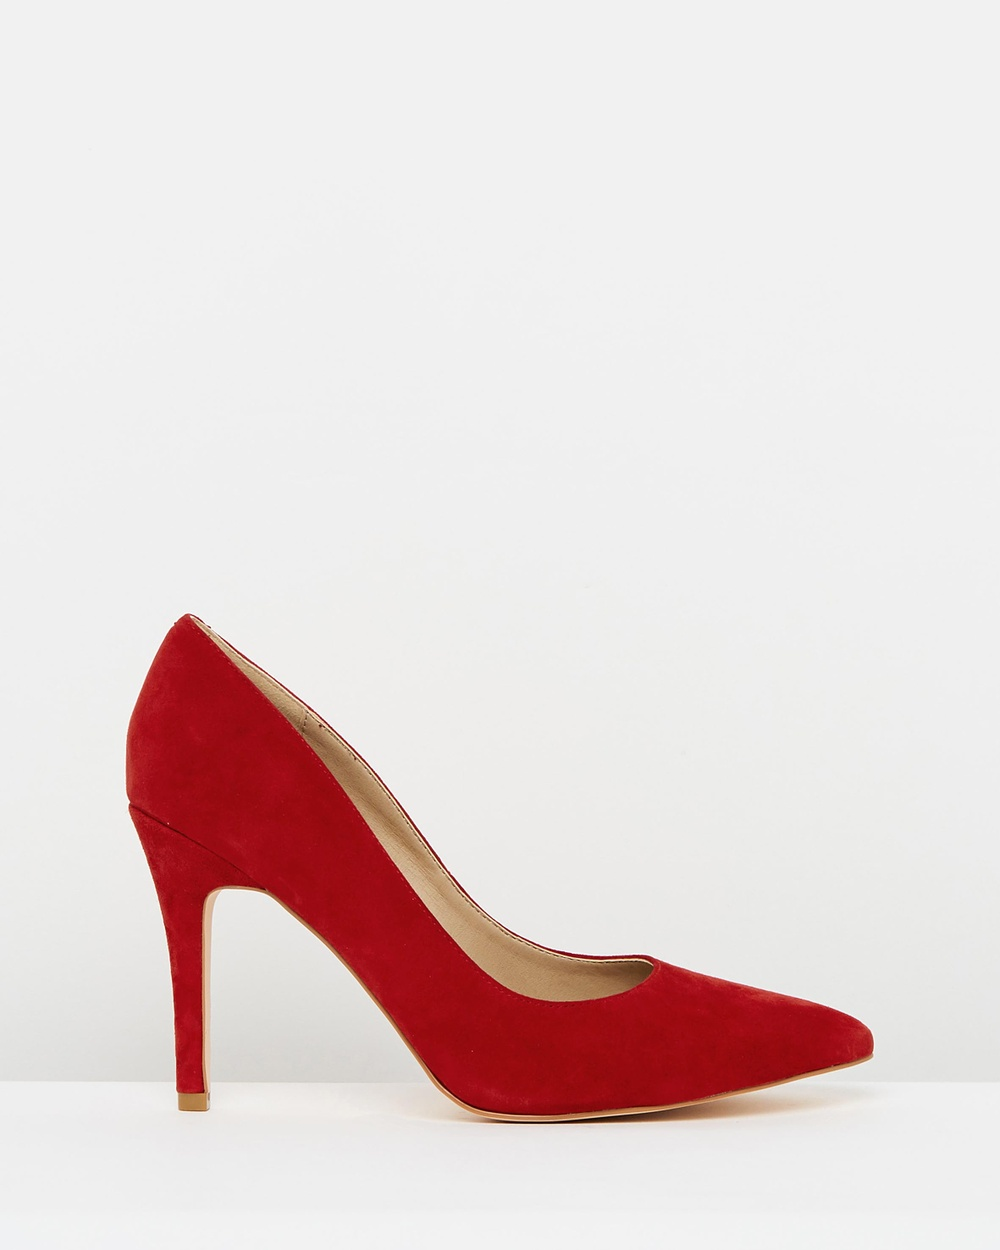 Atmos & Here ICONIC EXCLUSIVE Elaine Leather Pumps All Pumps Red Suede ICONIC EXCLUSIVE Elaine Leather Pumps